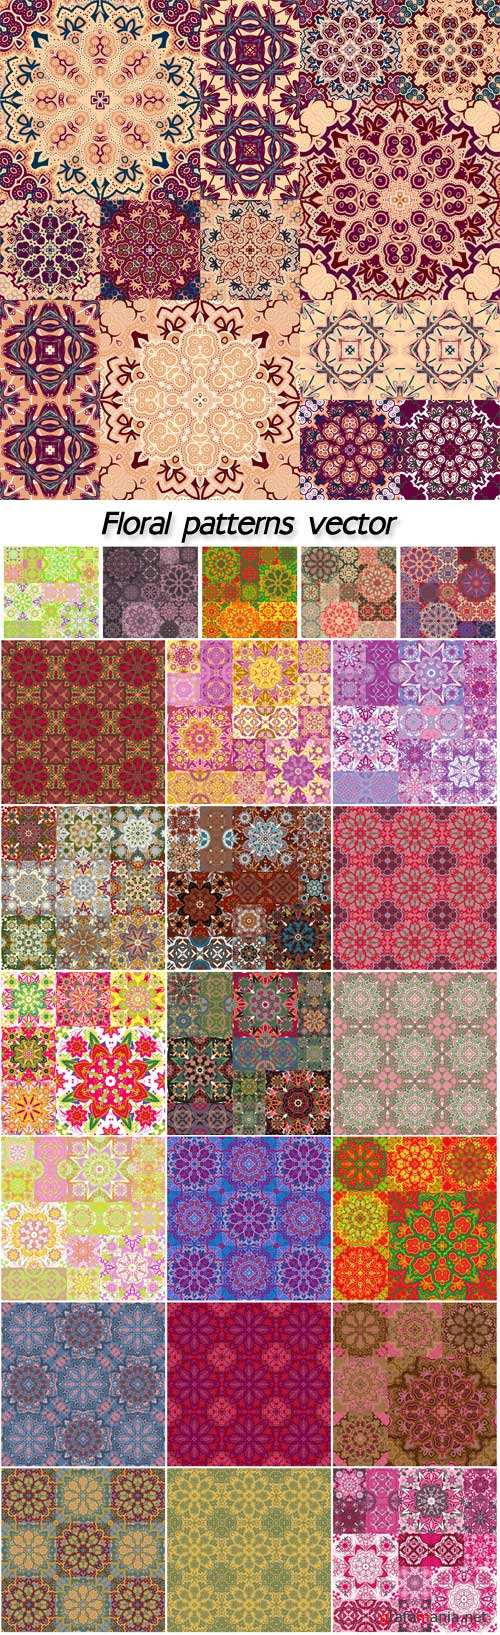 Floral patterns, vector backgrounds with colored patterns and flowers